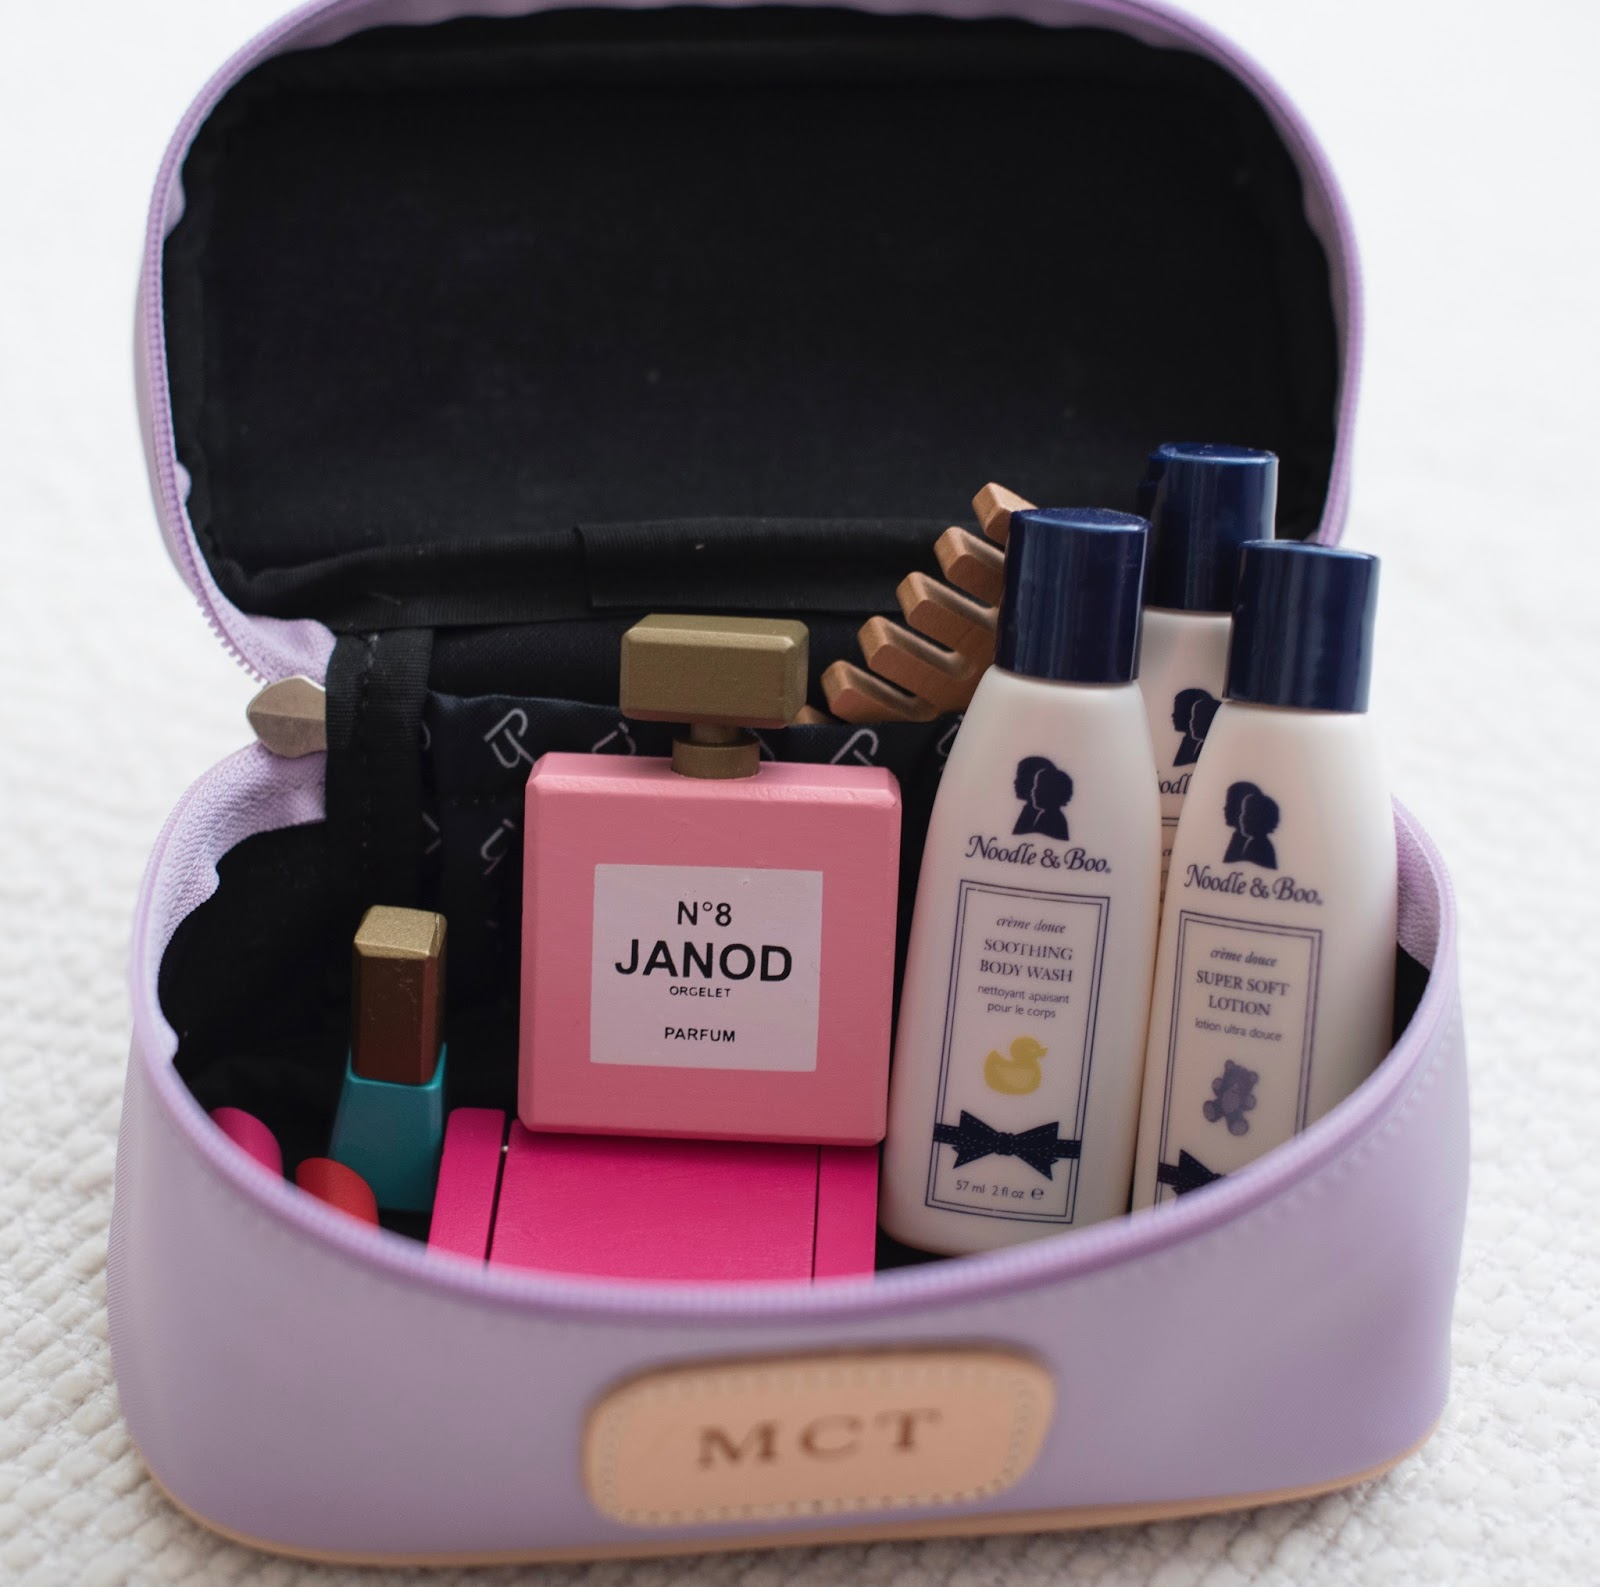 Toiletry kit for kids - Jon Hart Design on Something Delightful Blog